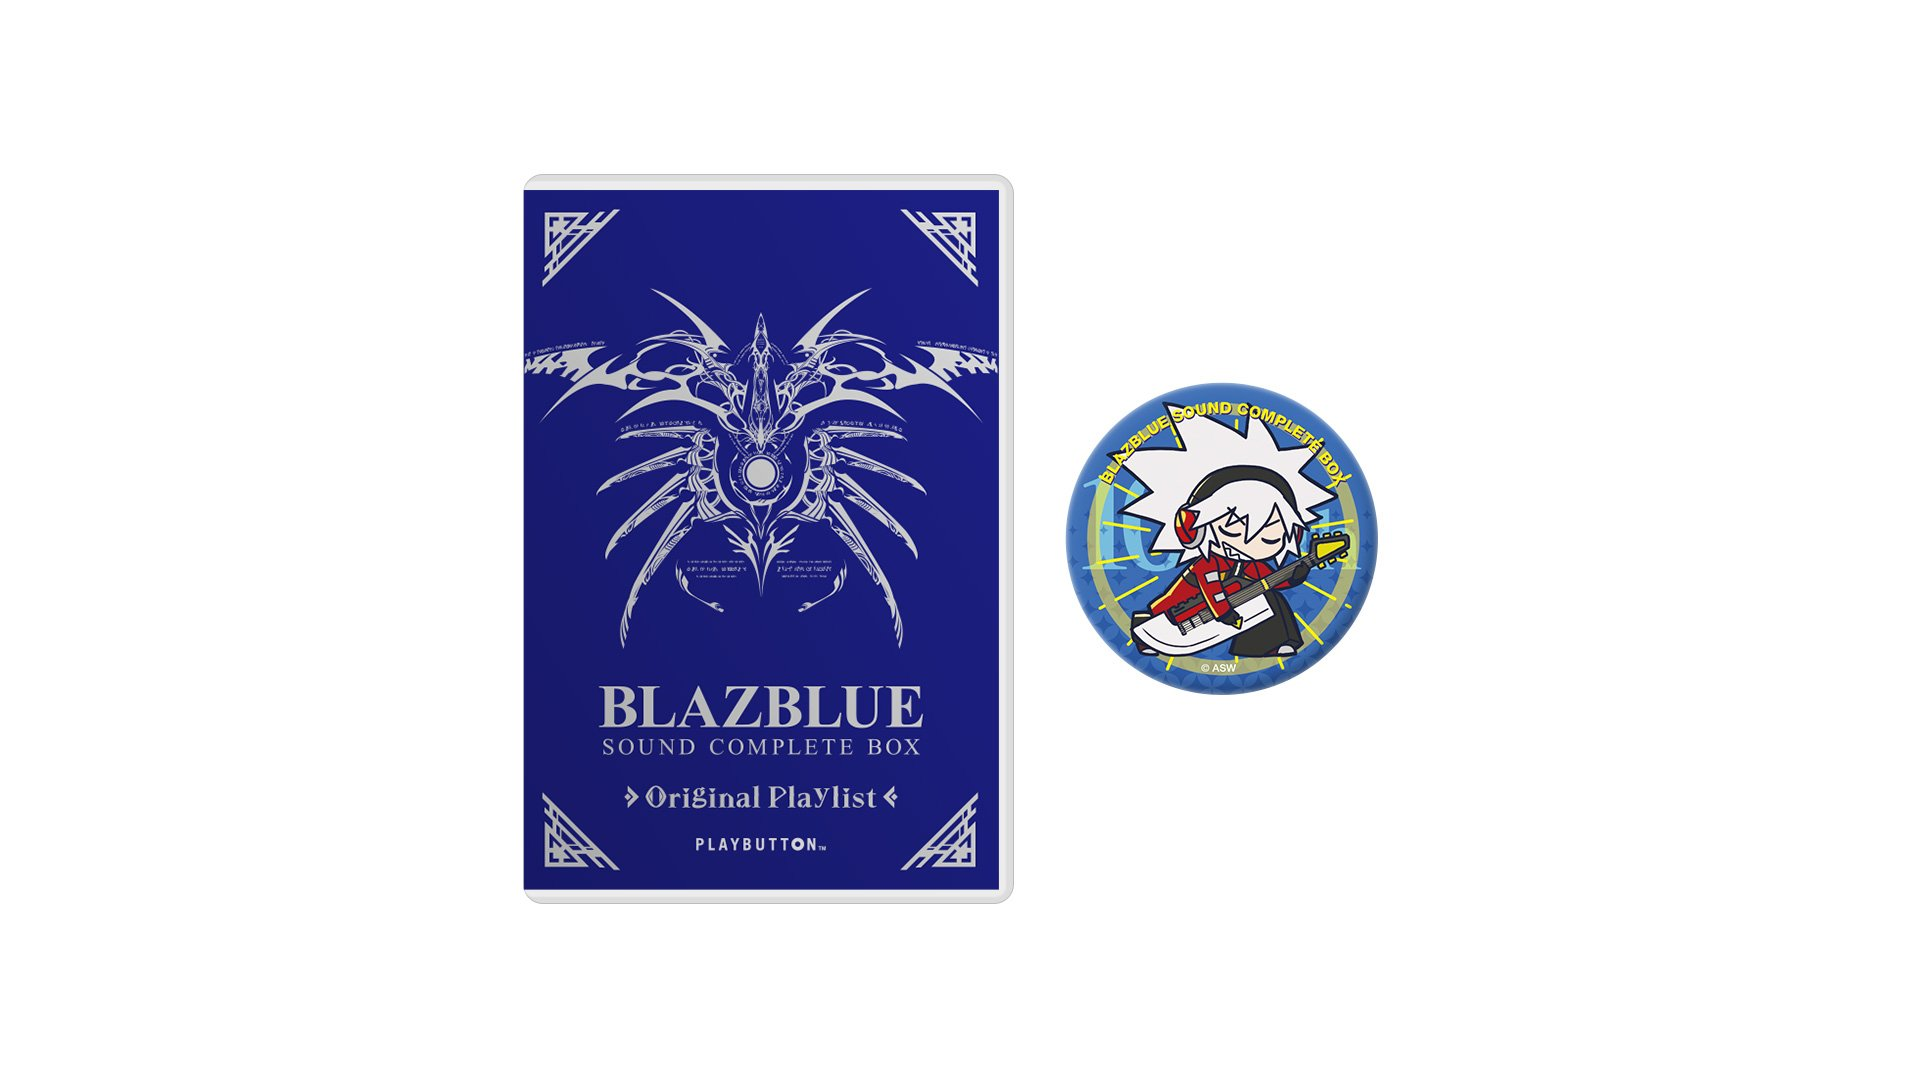 BlazBlue Sound Complete Box Playbutton.jpg